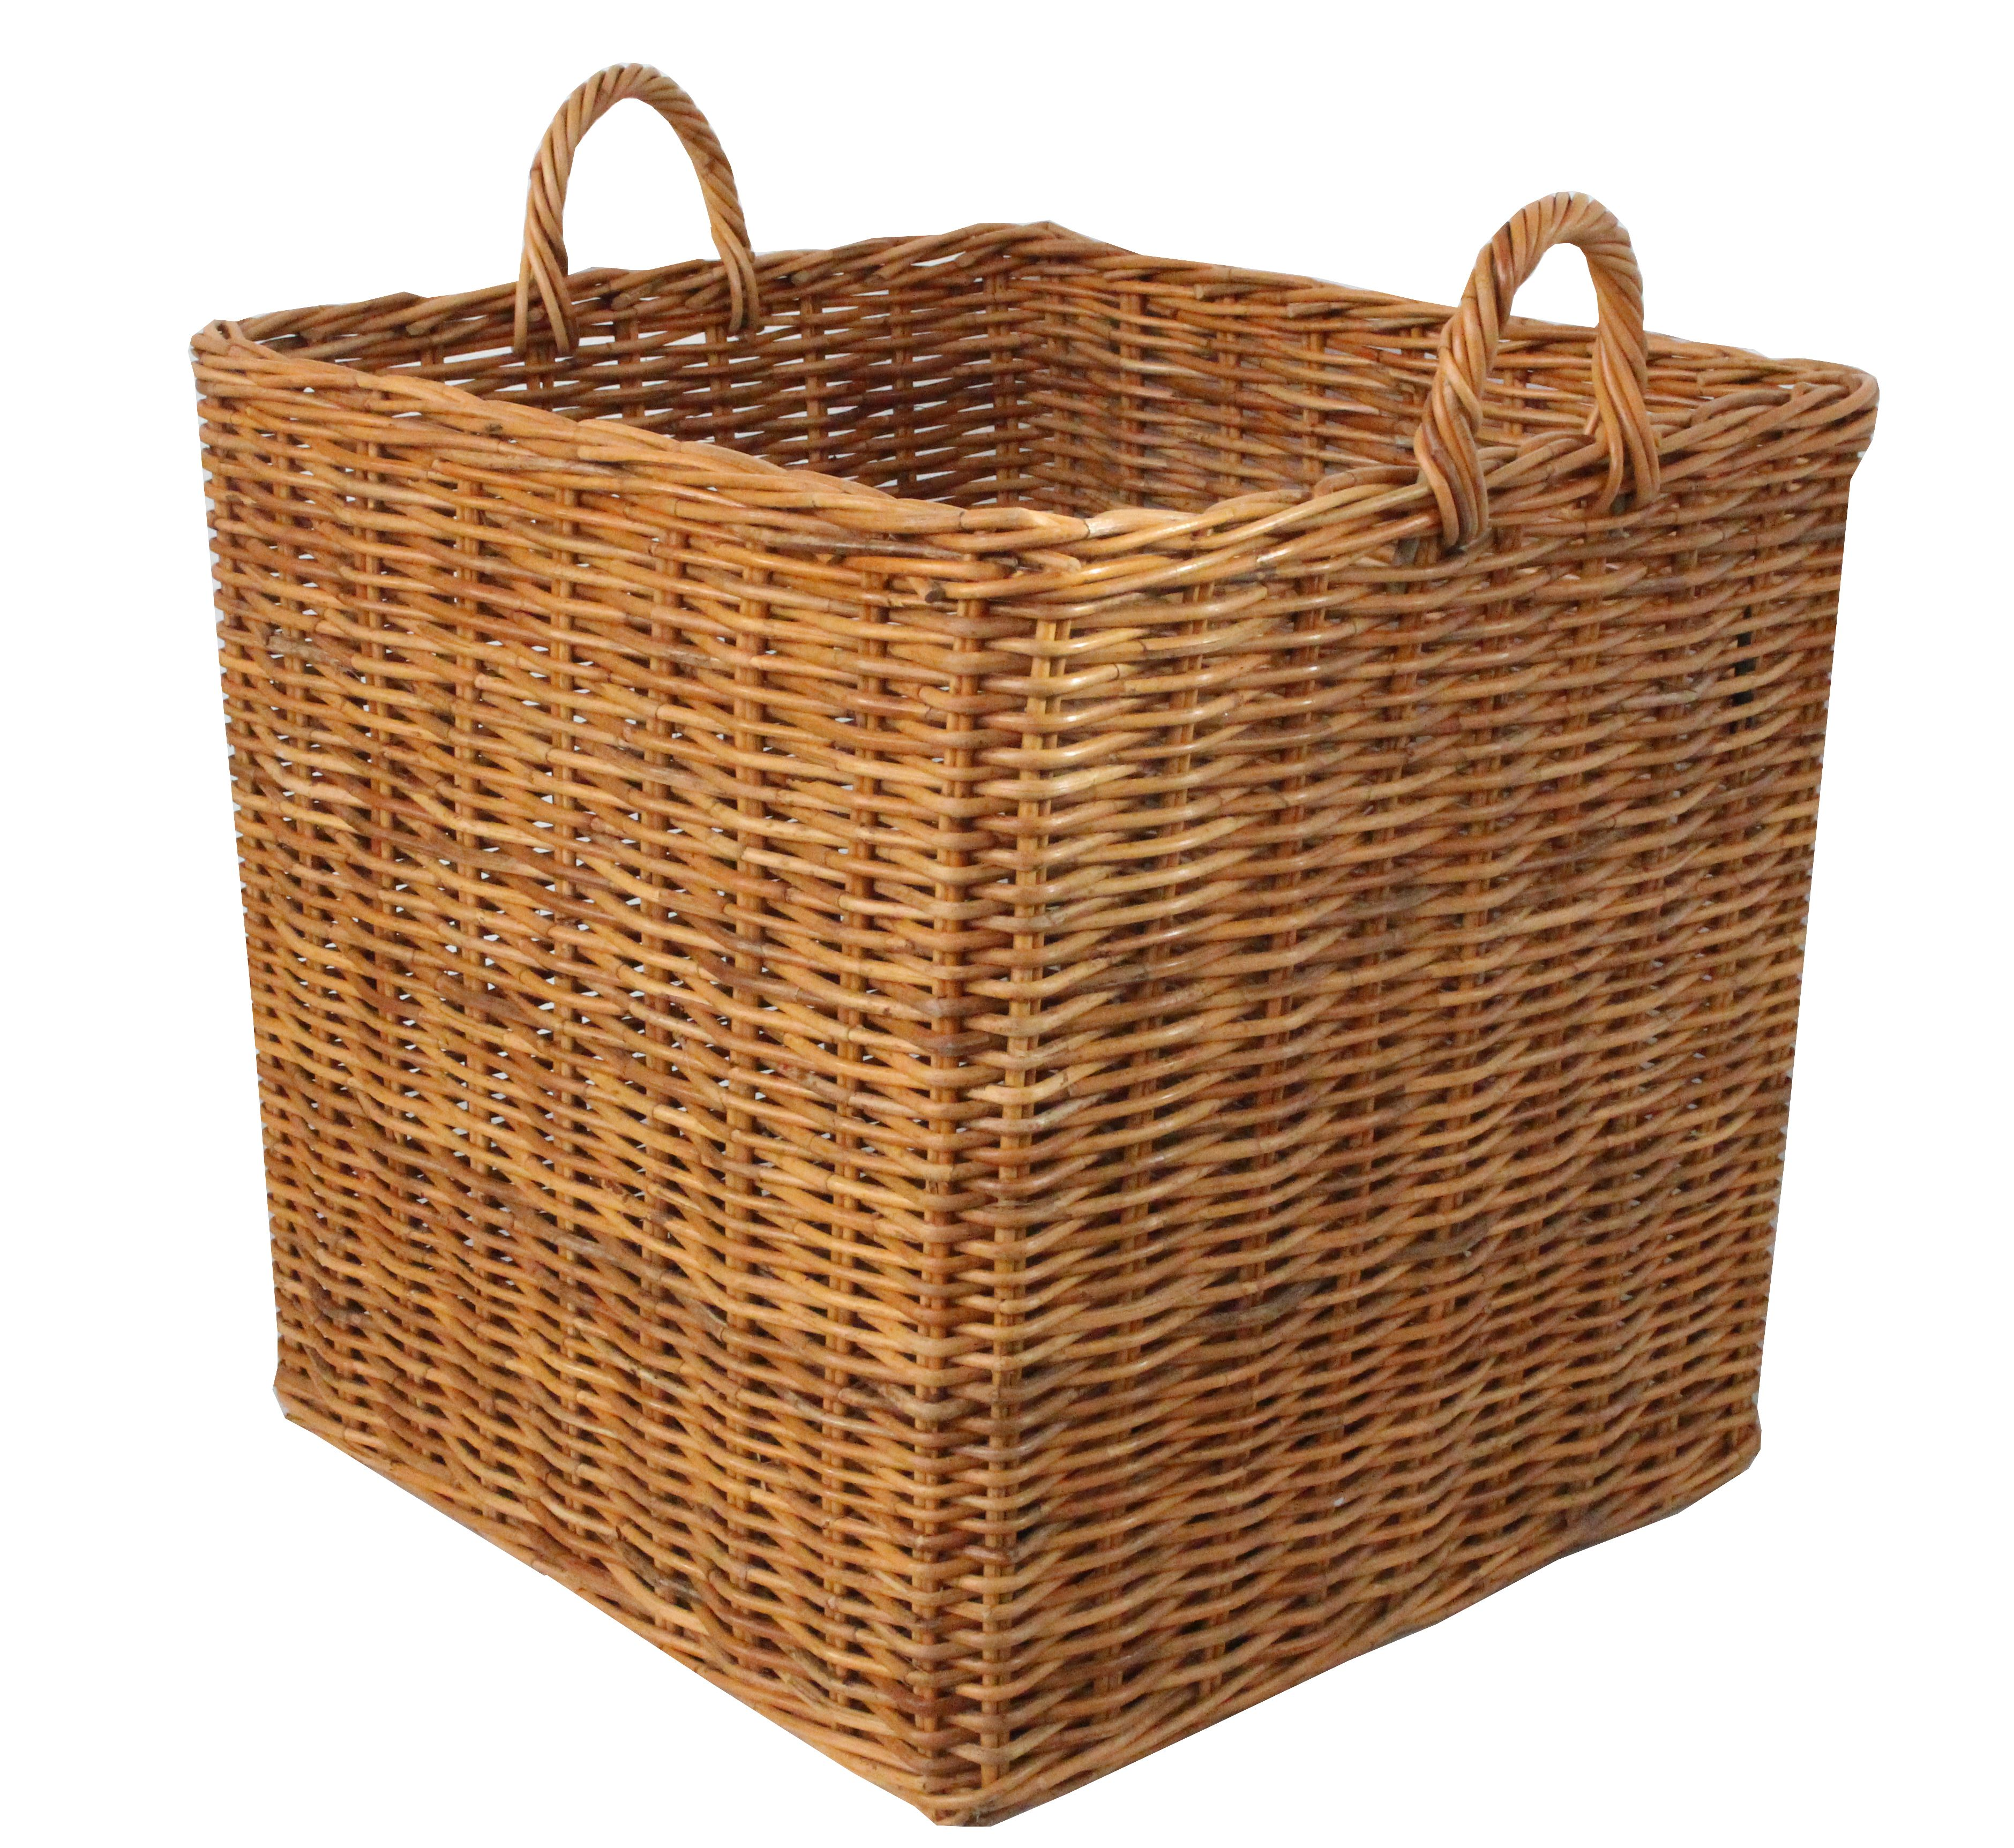 neptune somerton storage basket small storage baskets.htm honey rattan square wicker log basket log baskets  wicker  honey rattan square wicker log basket